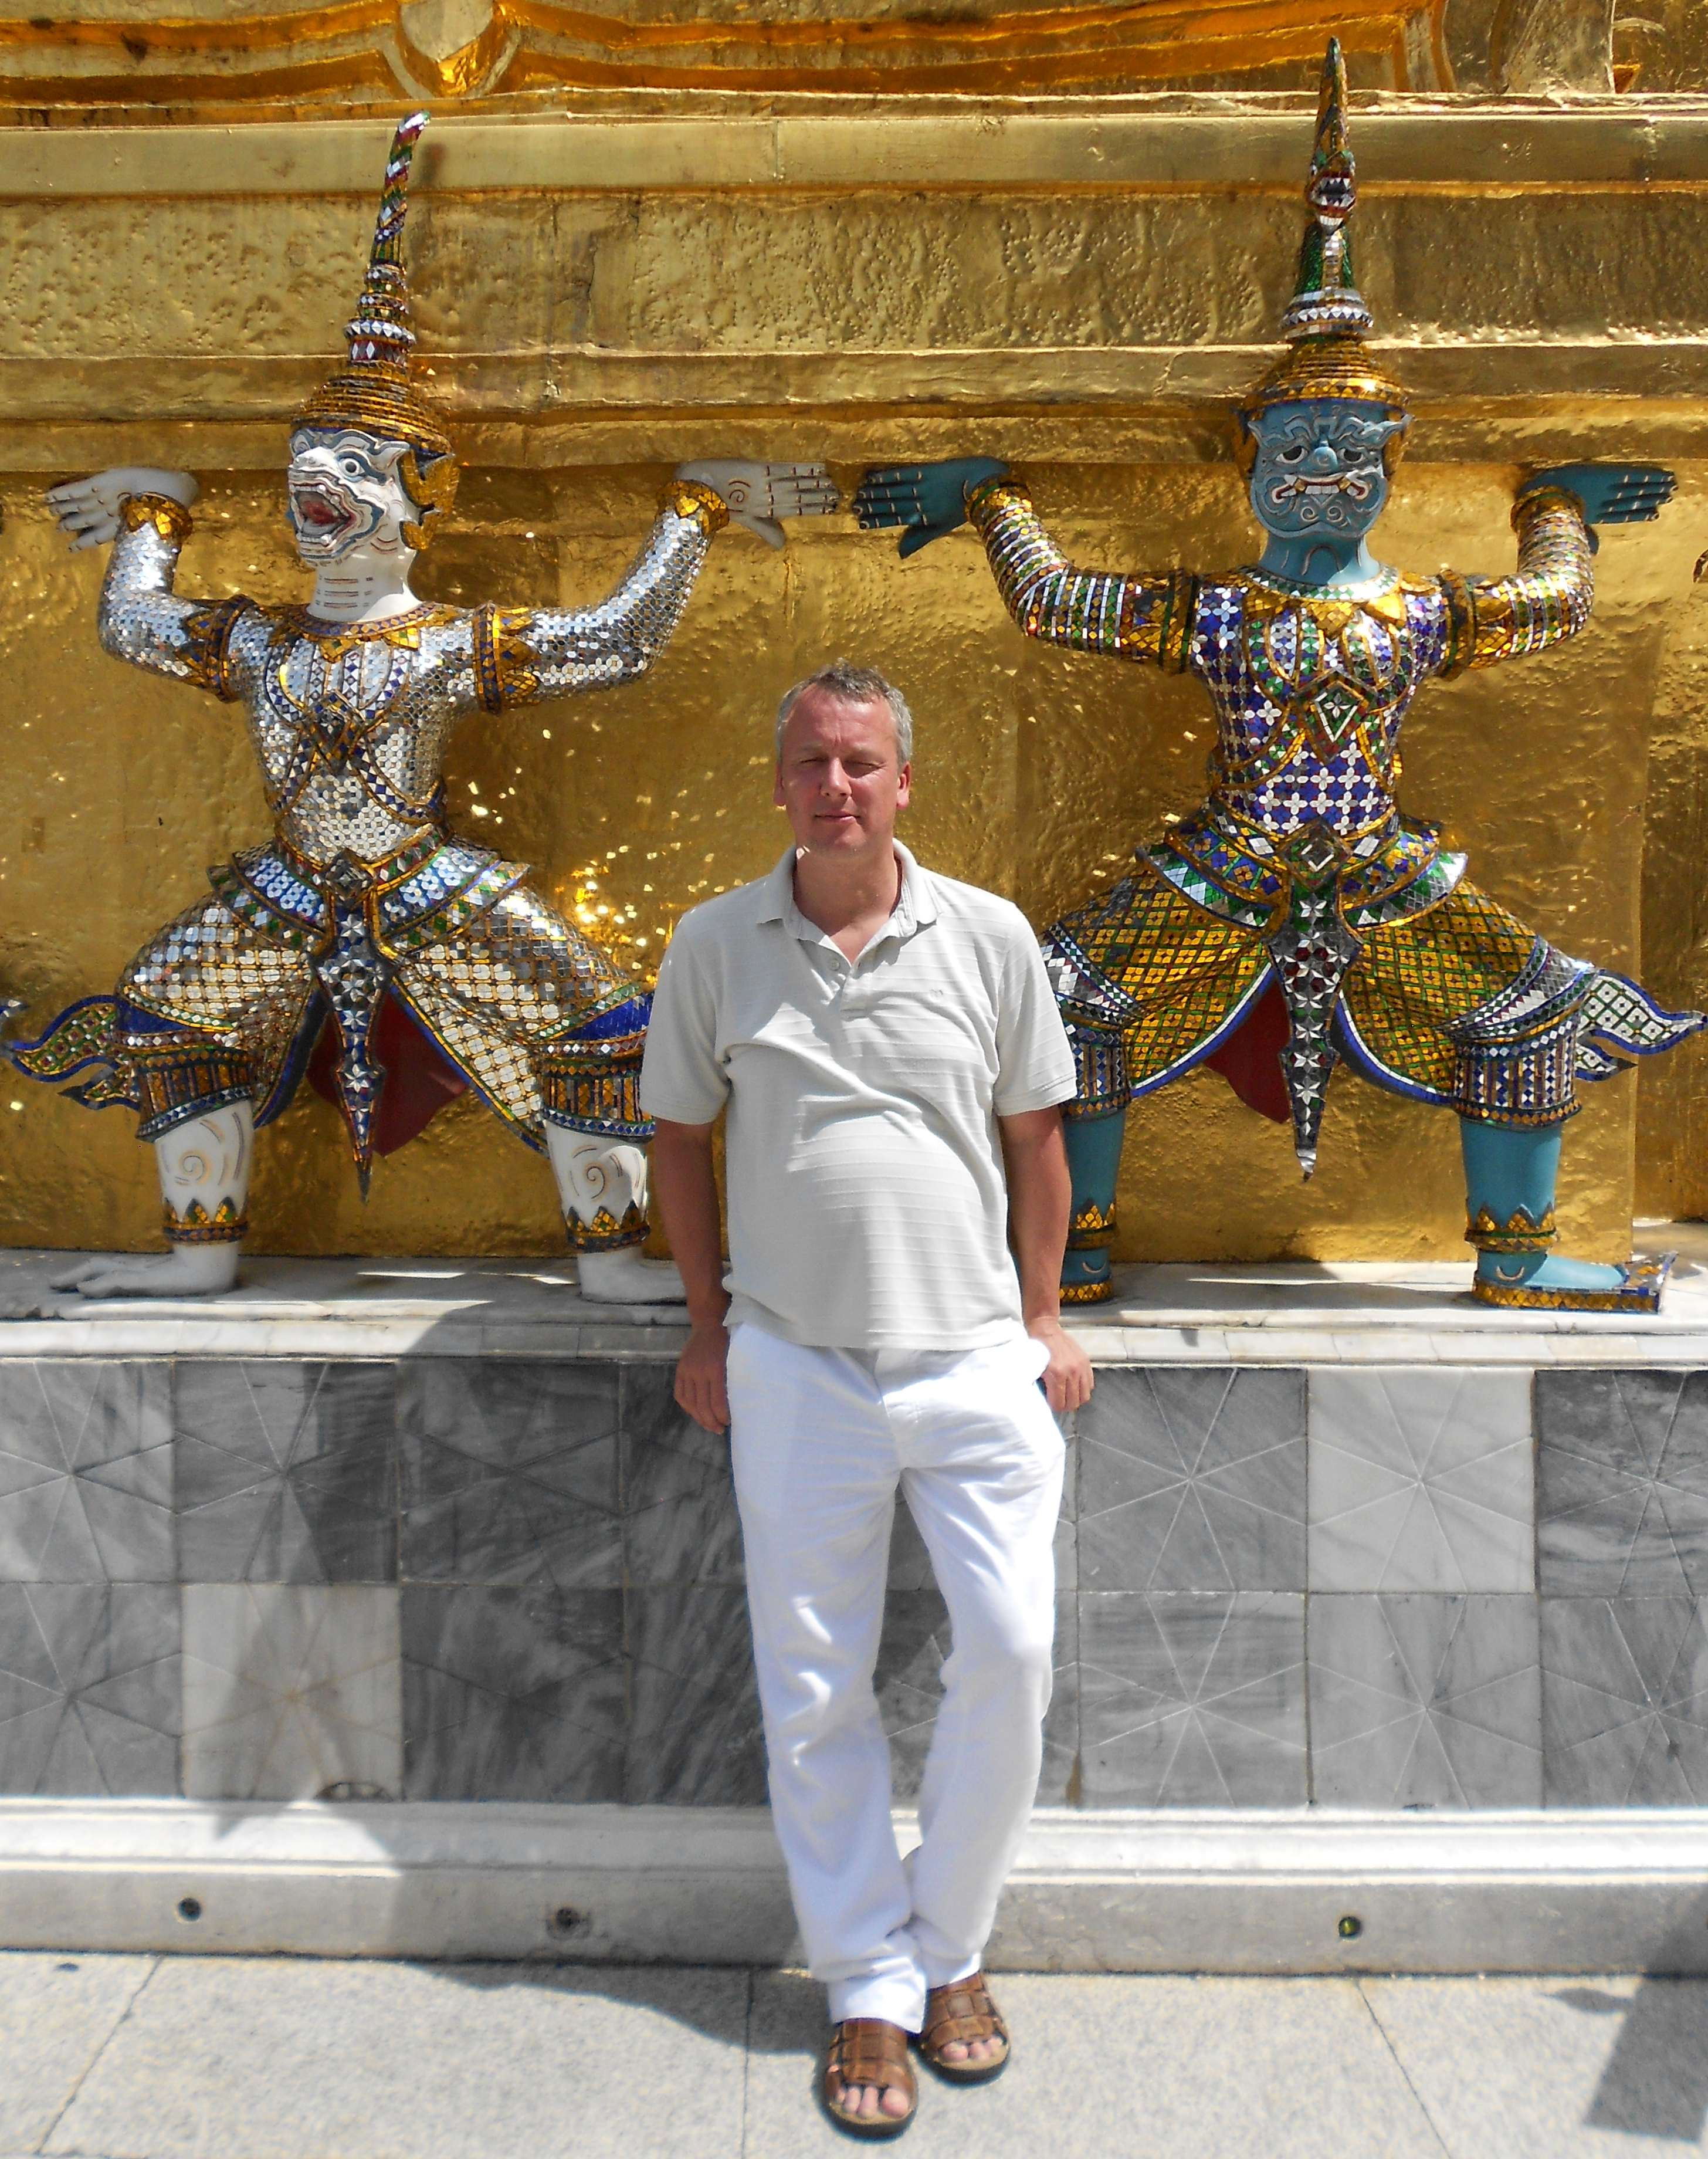 Travel blog: Dave Explores Thailand and Dubai – Part 1